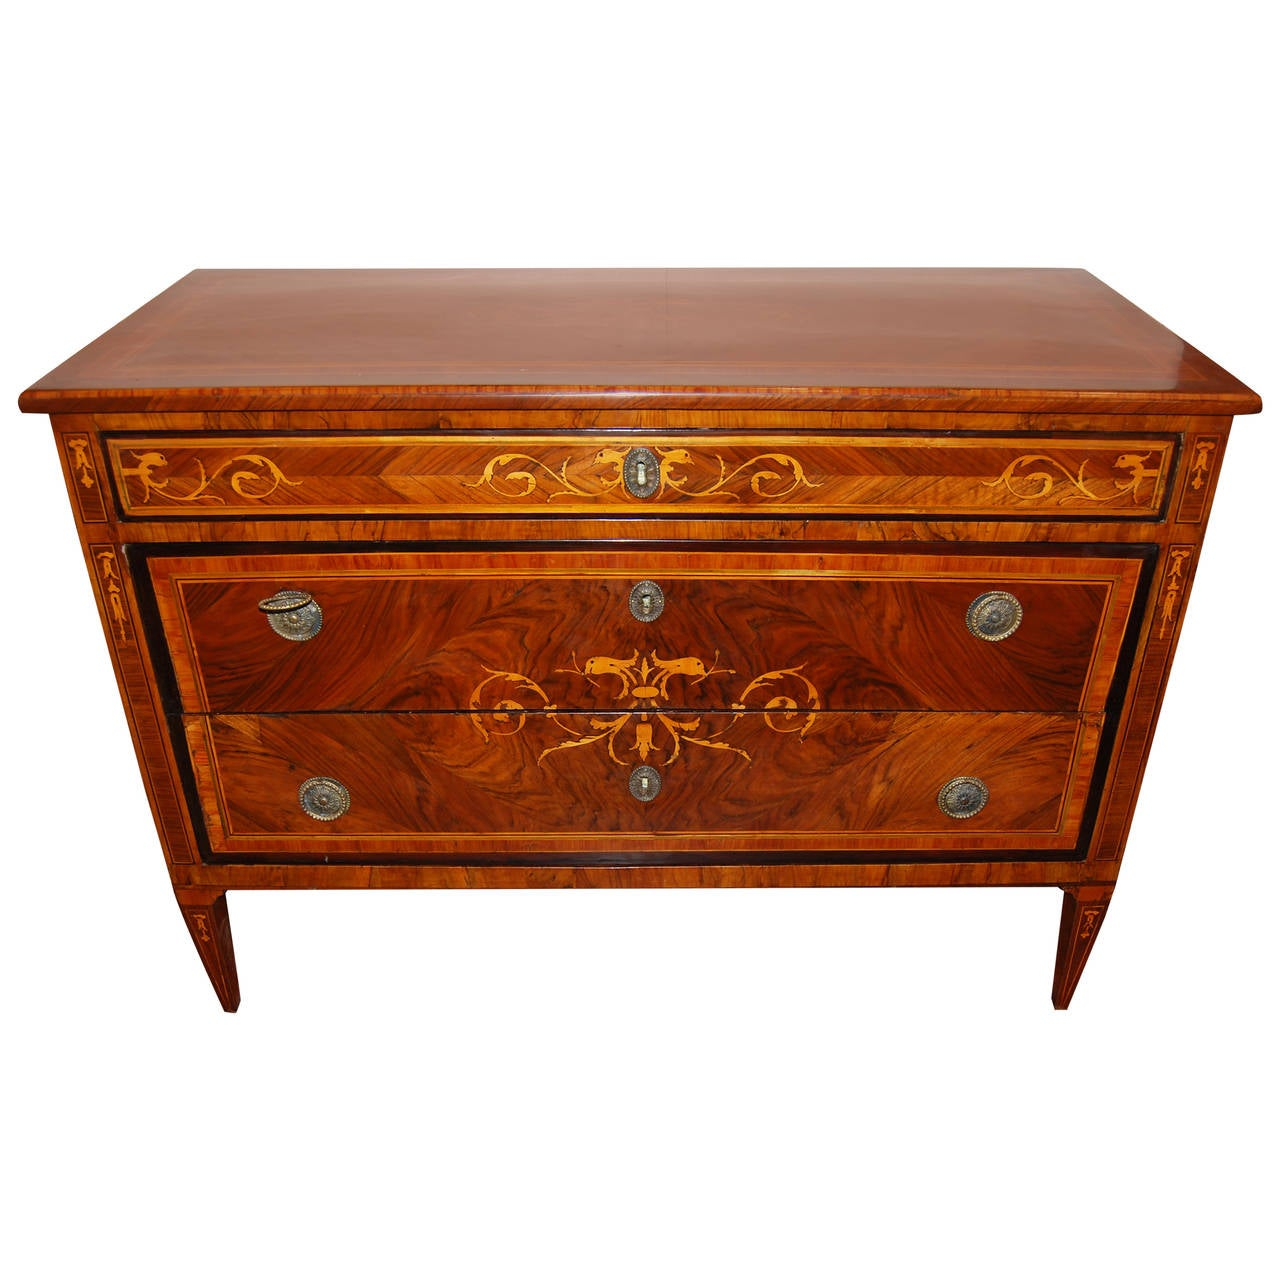 18th Century Italian Marquetry Commode